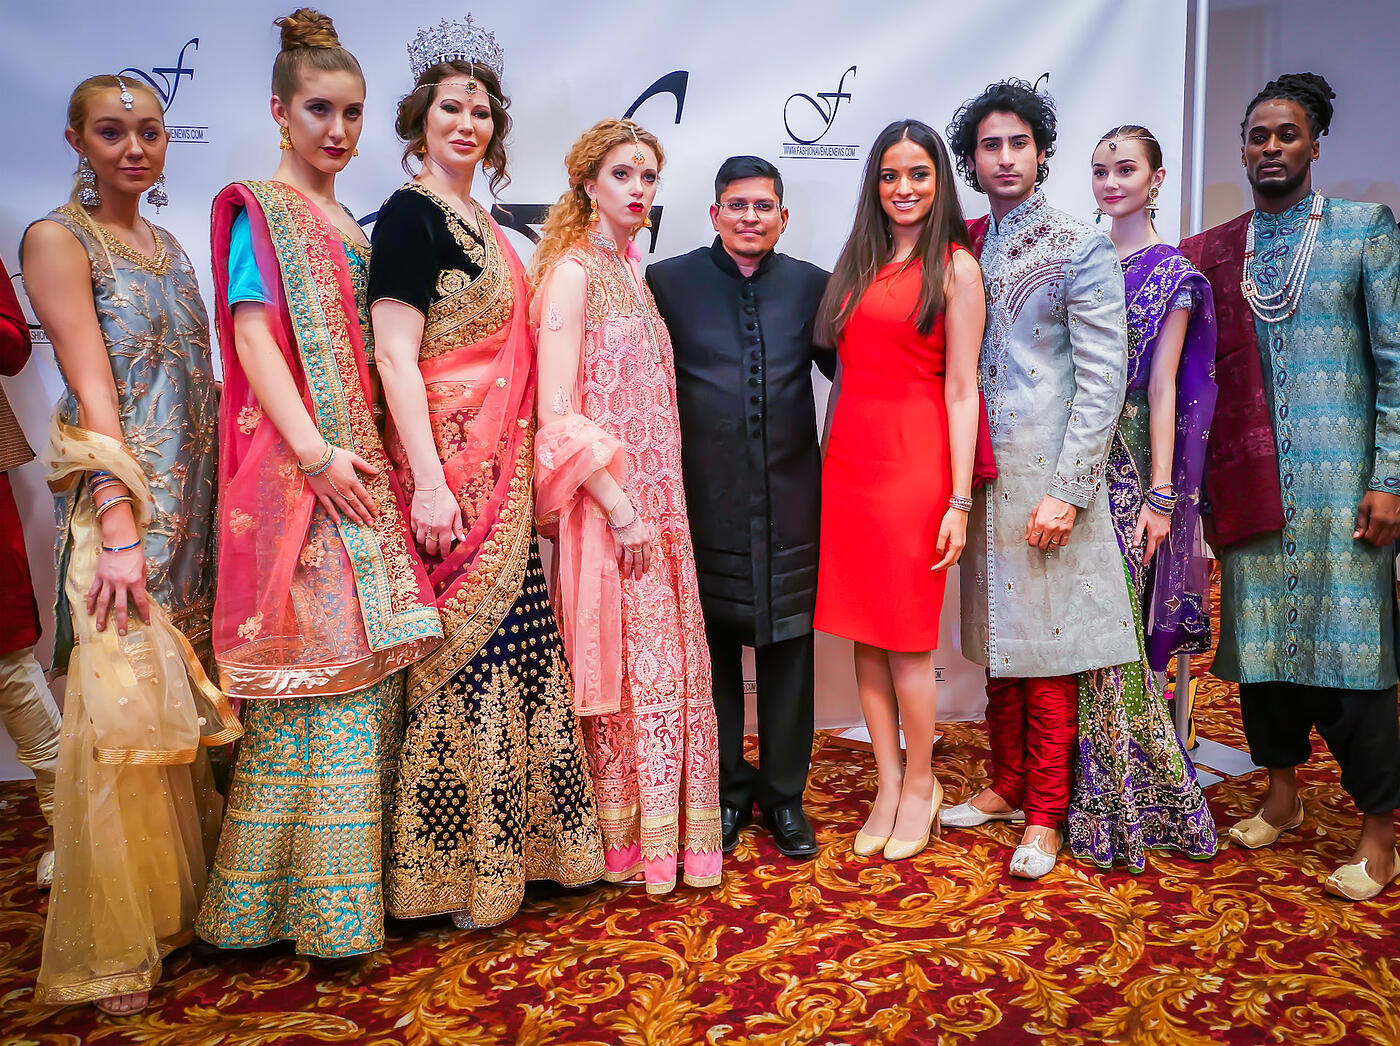 Prashant Goyal of Heritage India Fashions celebrates beauty in diversity by featuring models with disabilities at Kiss the Monkeys Celebrity Gala FAO Schwarz Royalton